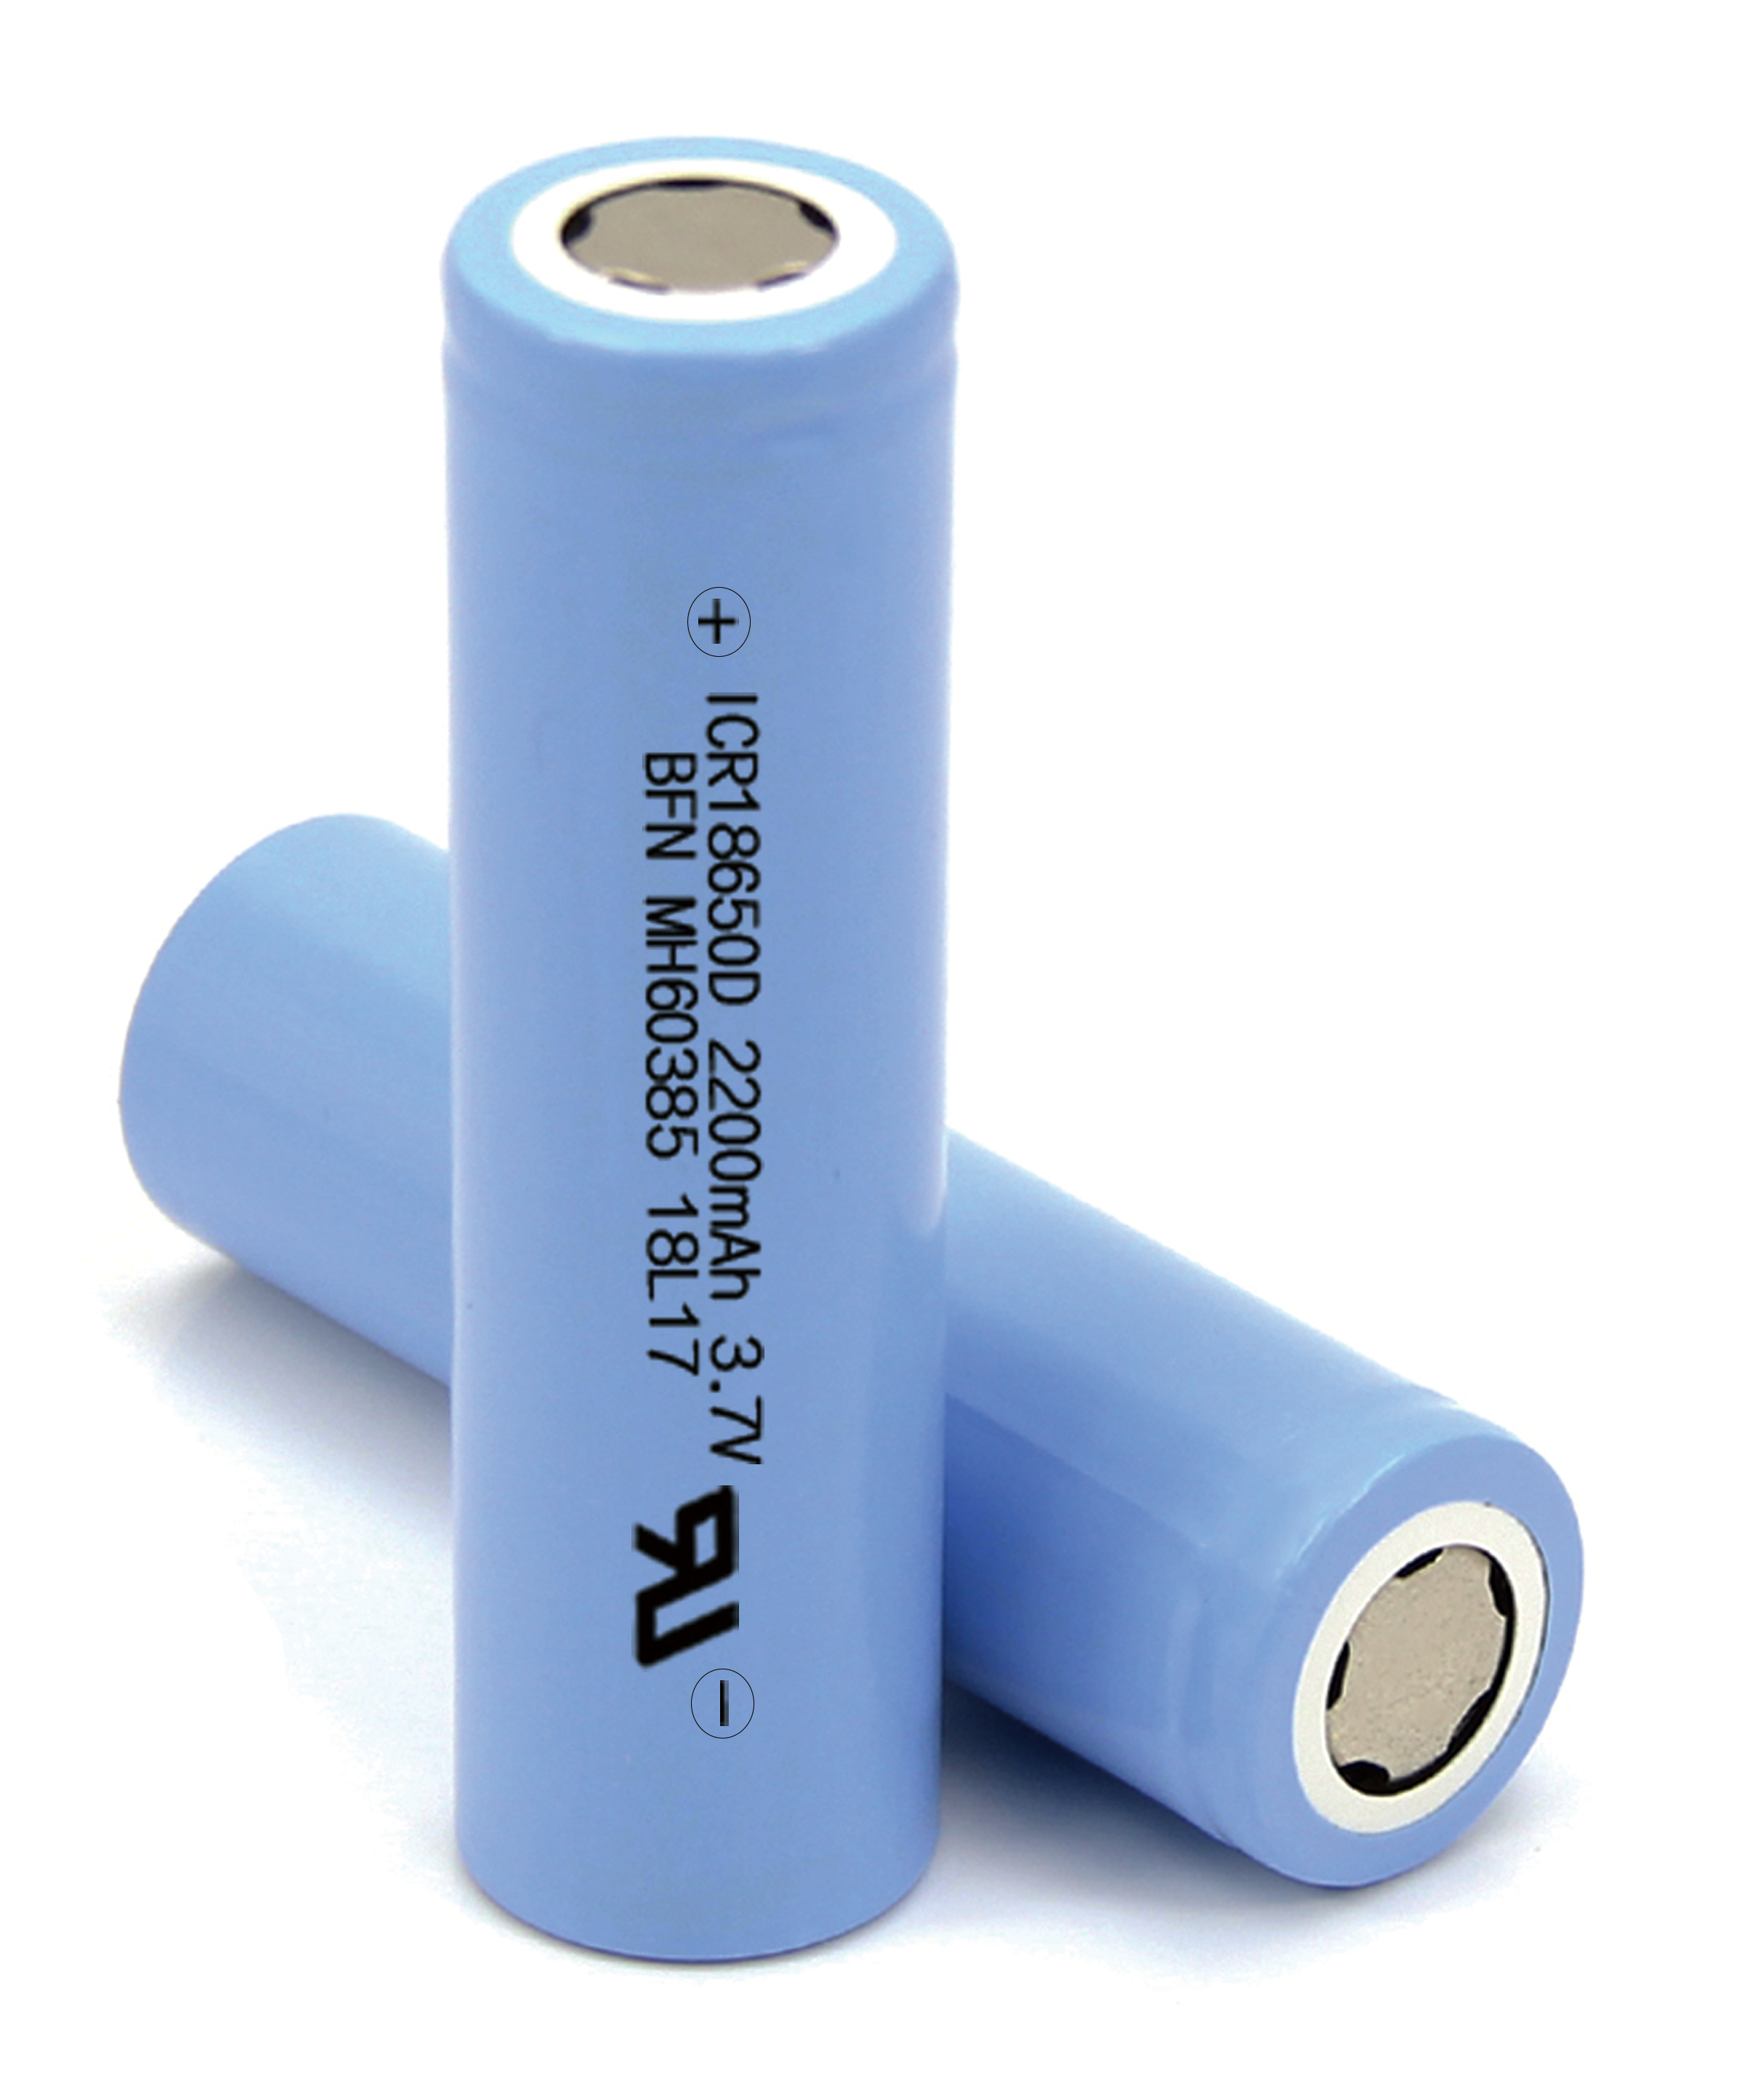 Medium rate battery